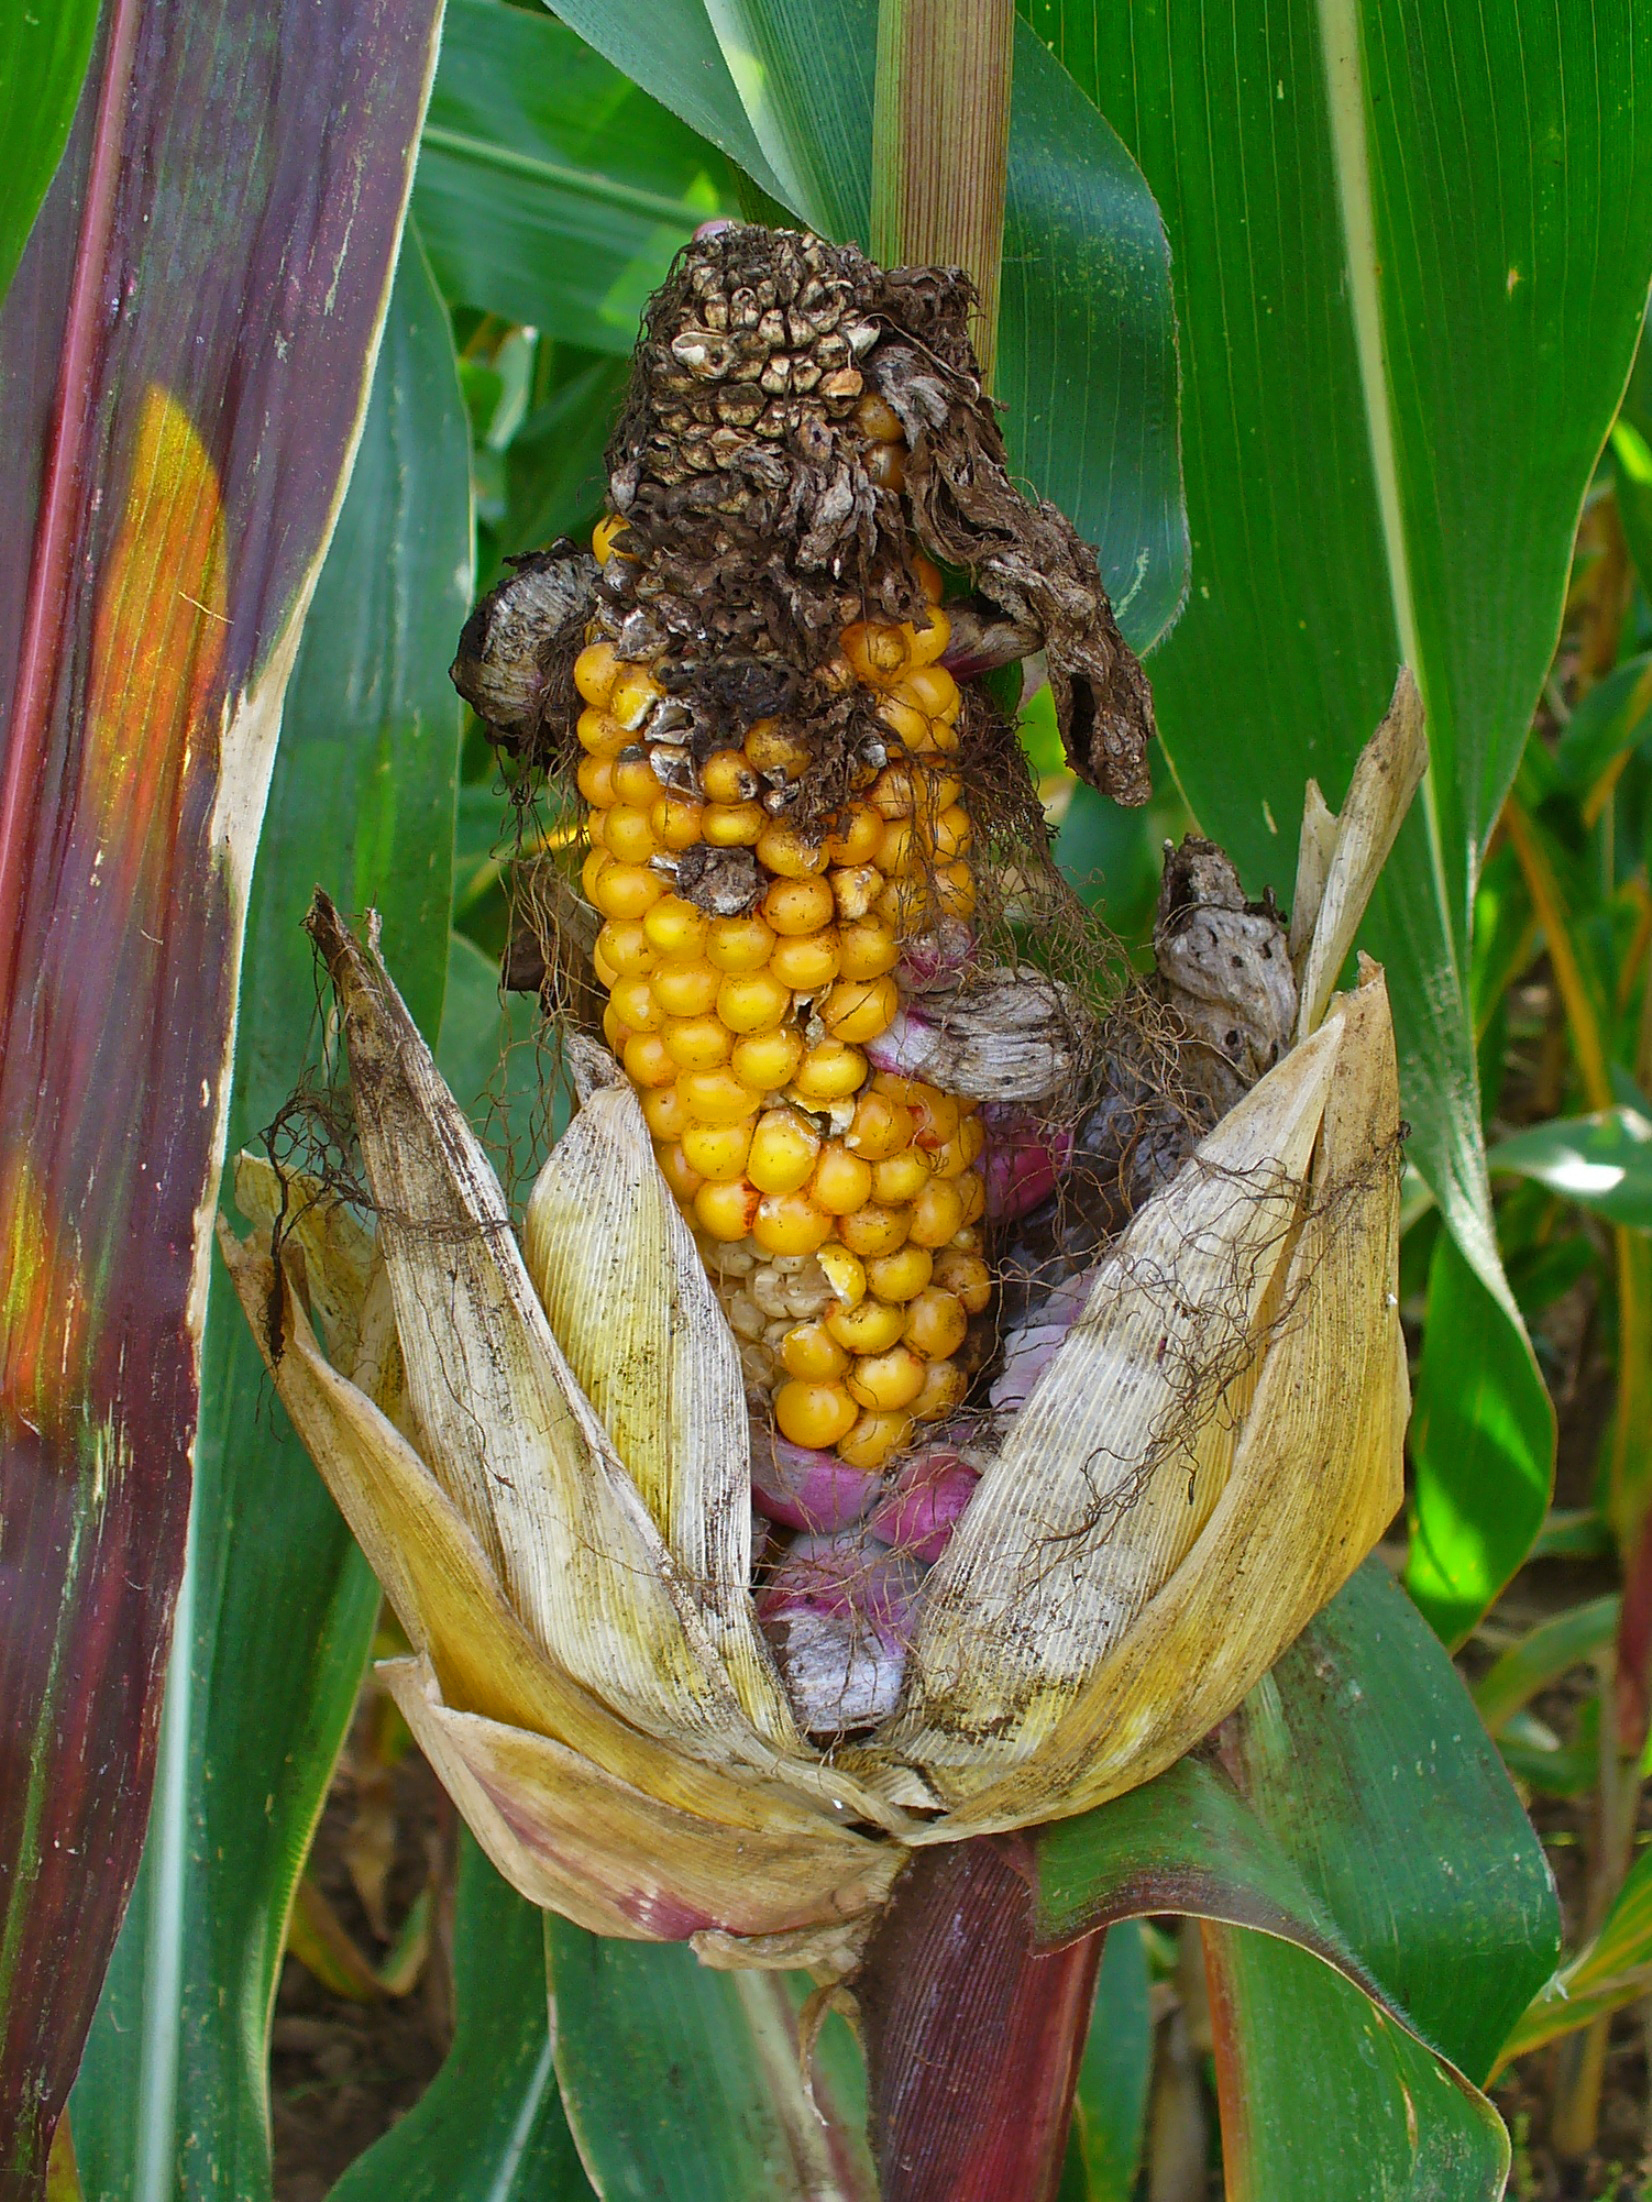 Image of corn smut